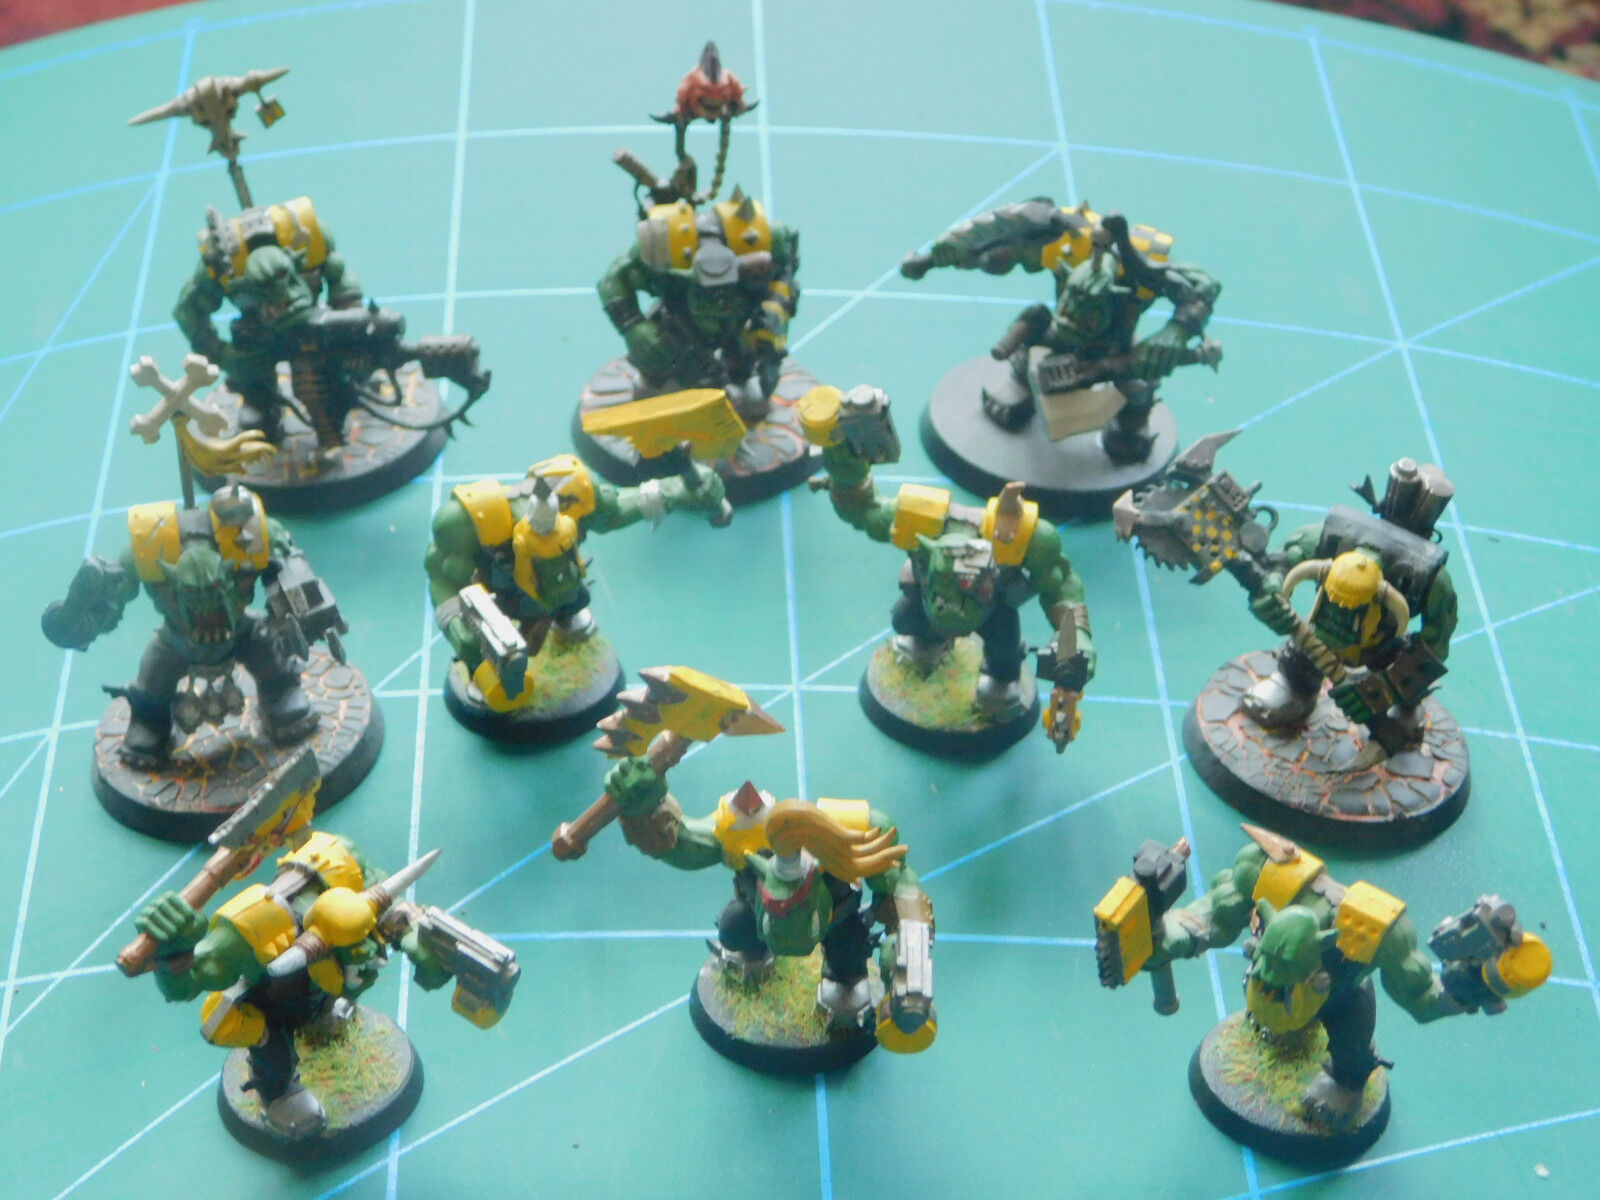 10 warhammer 40k dungeon dragons space orc hobgoblin plastic figures